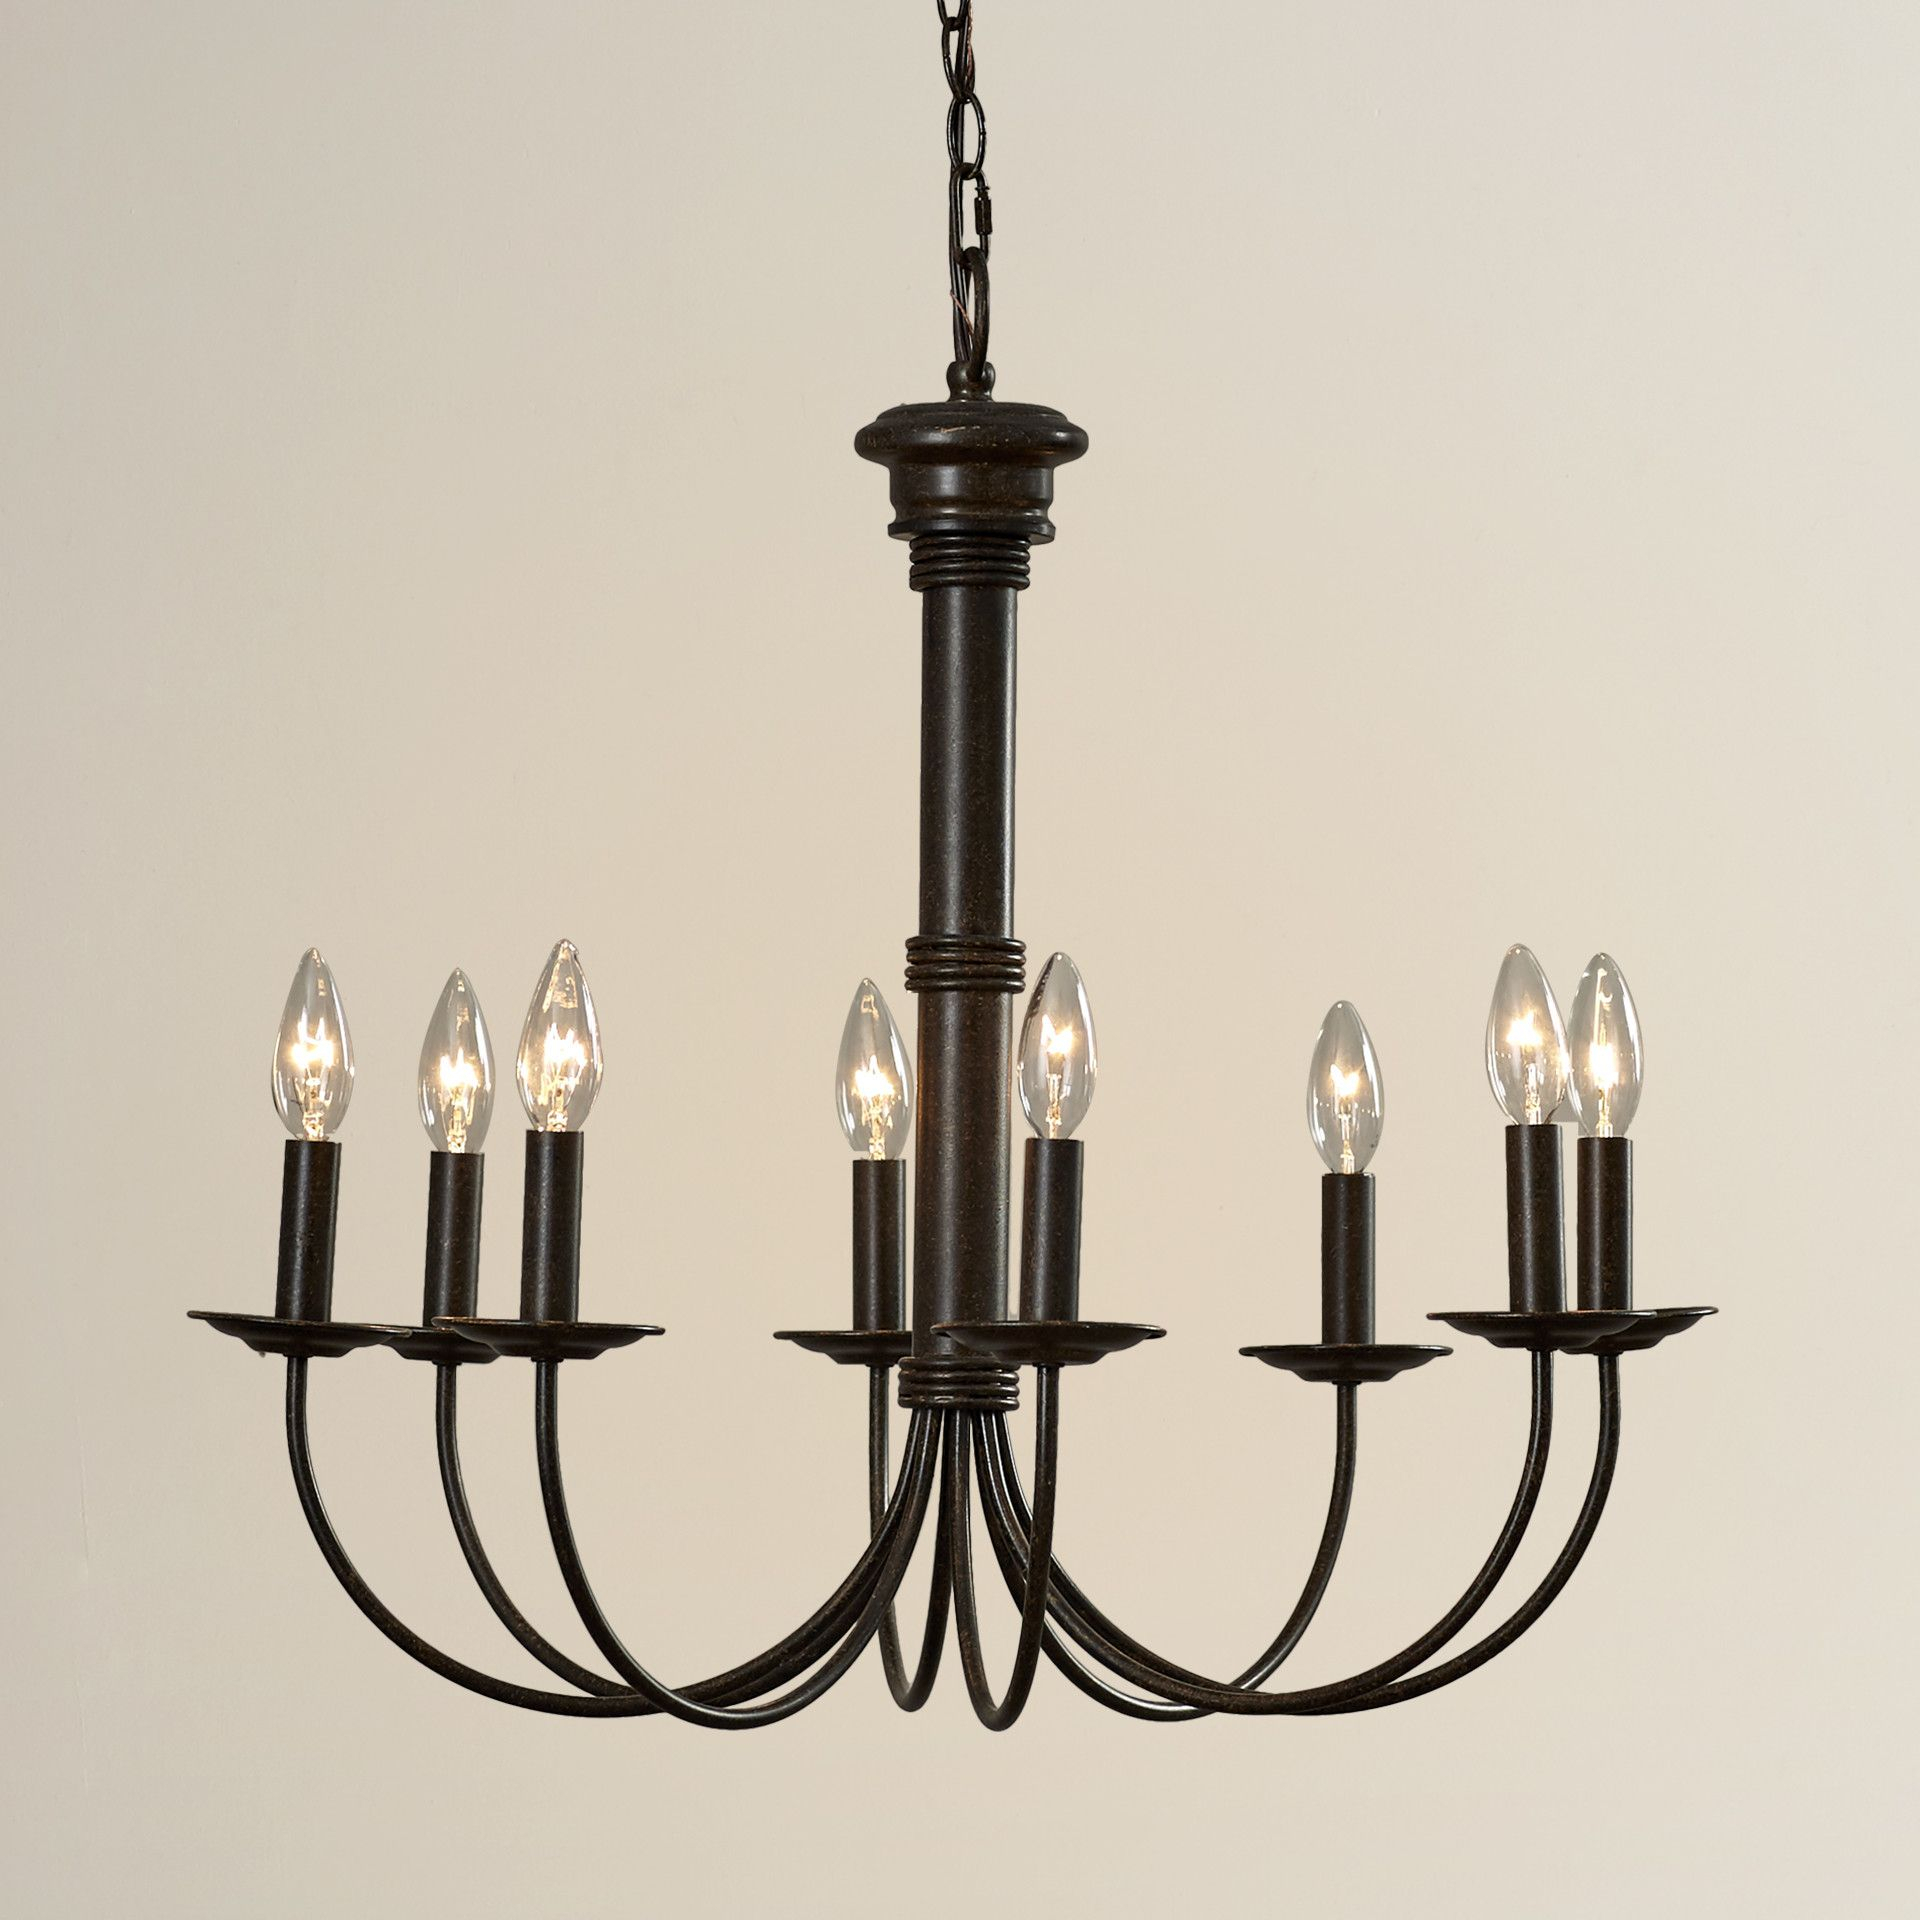 Savoie 8 Light Chandelier In 2019 | Lighting | Chandelier For Shaylee 8 Light Candle Style Chandeliers (View 12 of 30)